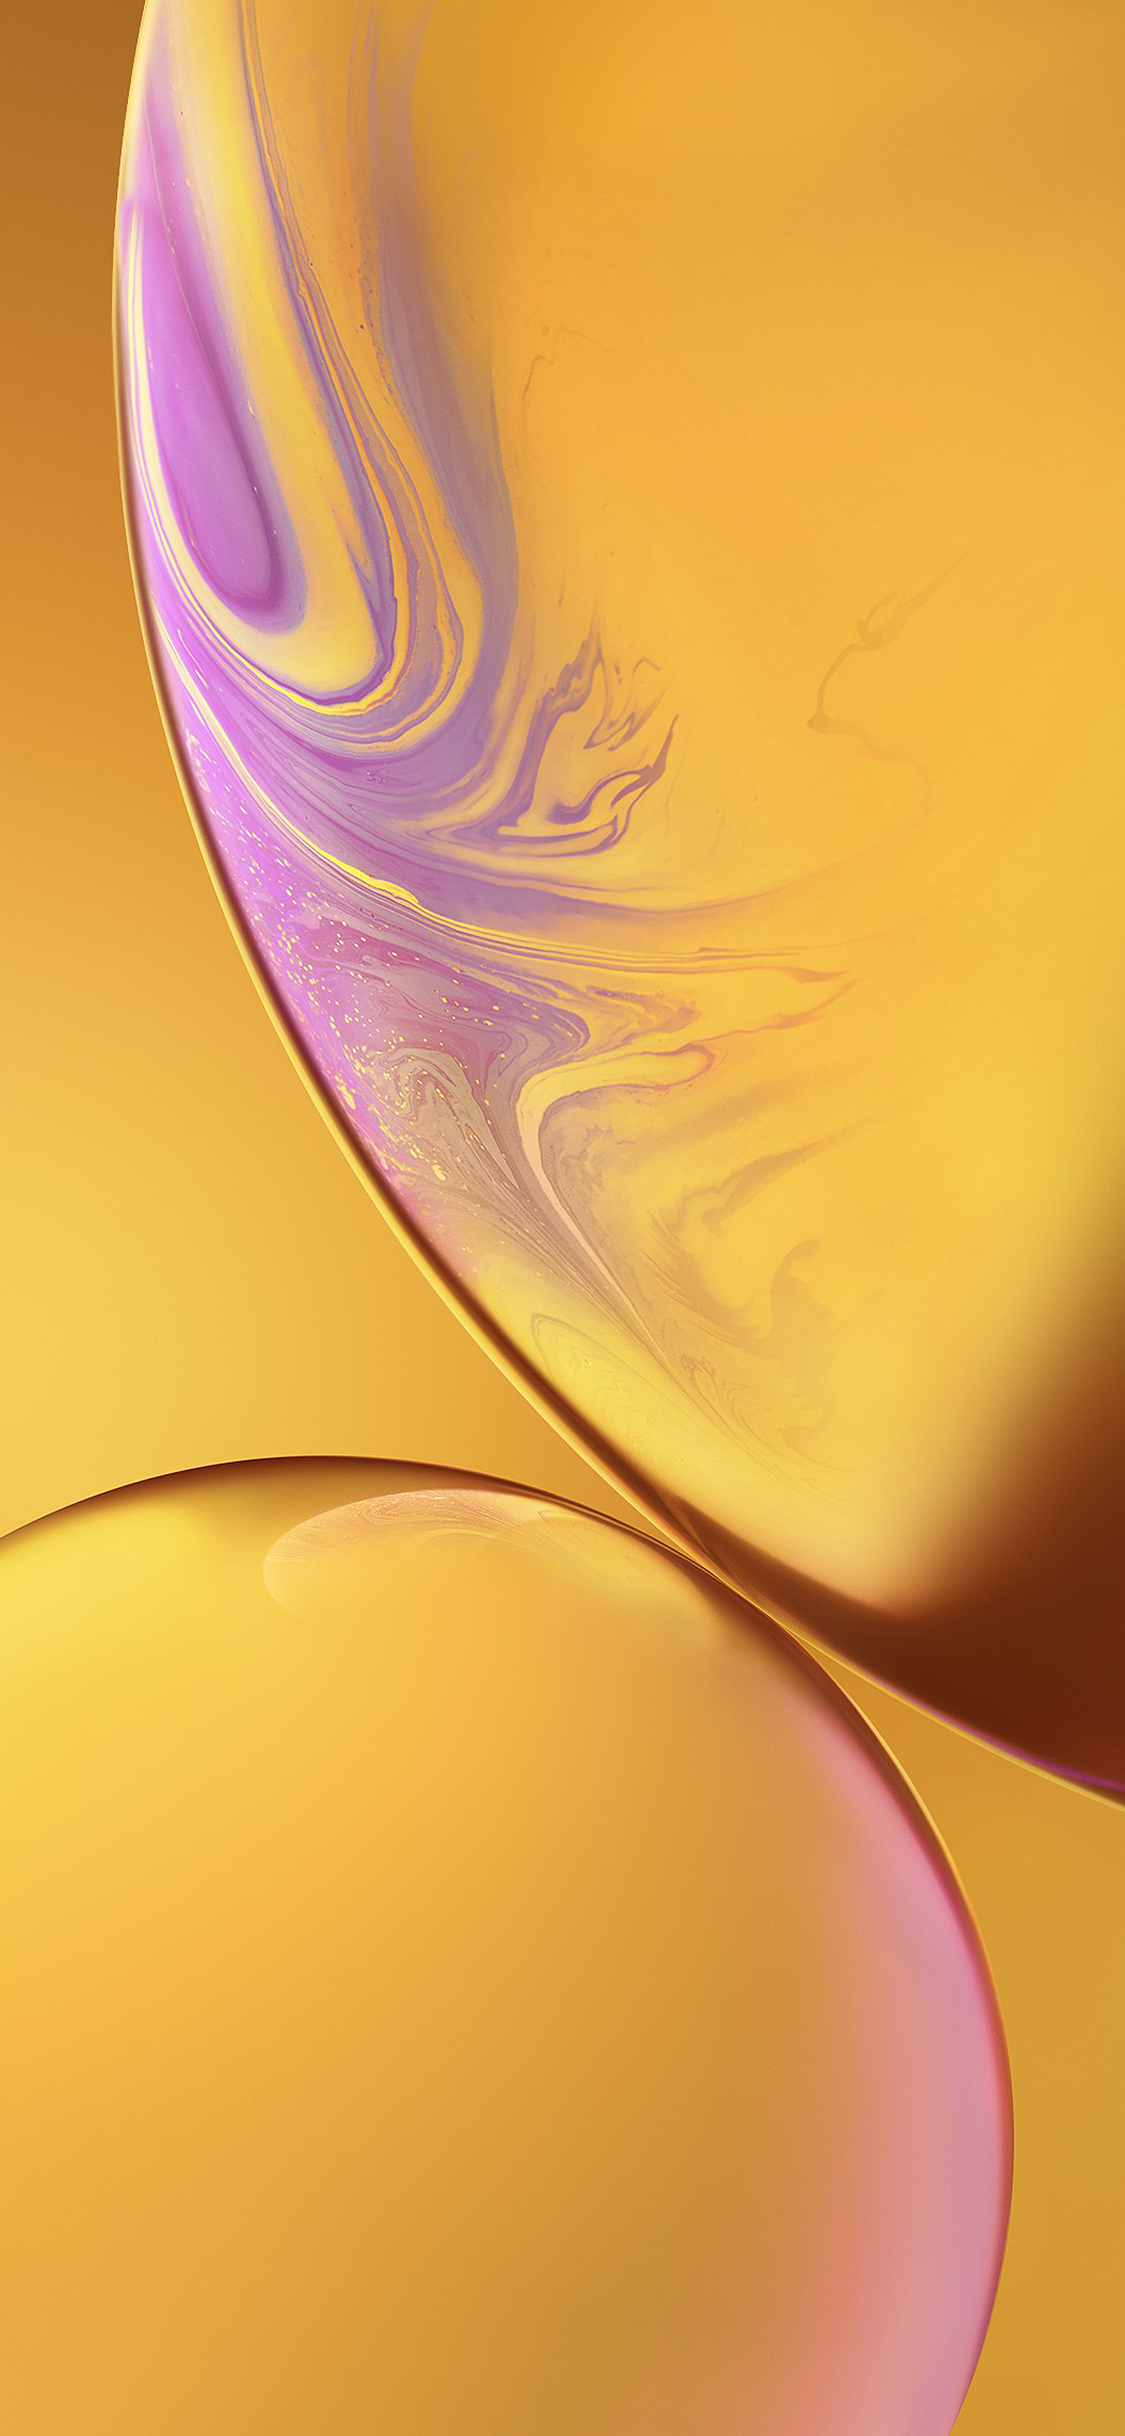 Iphone Xr Stock Wallpaper Yellow Wallpapers Central